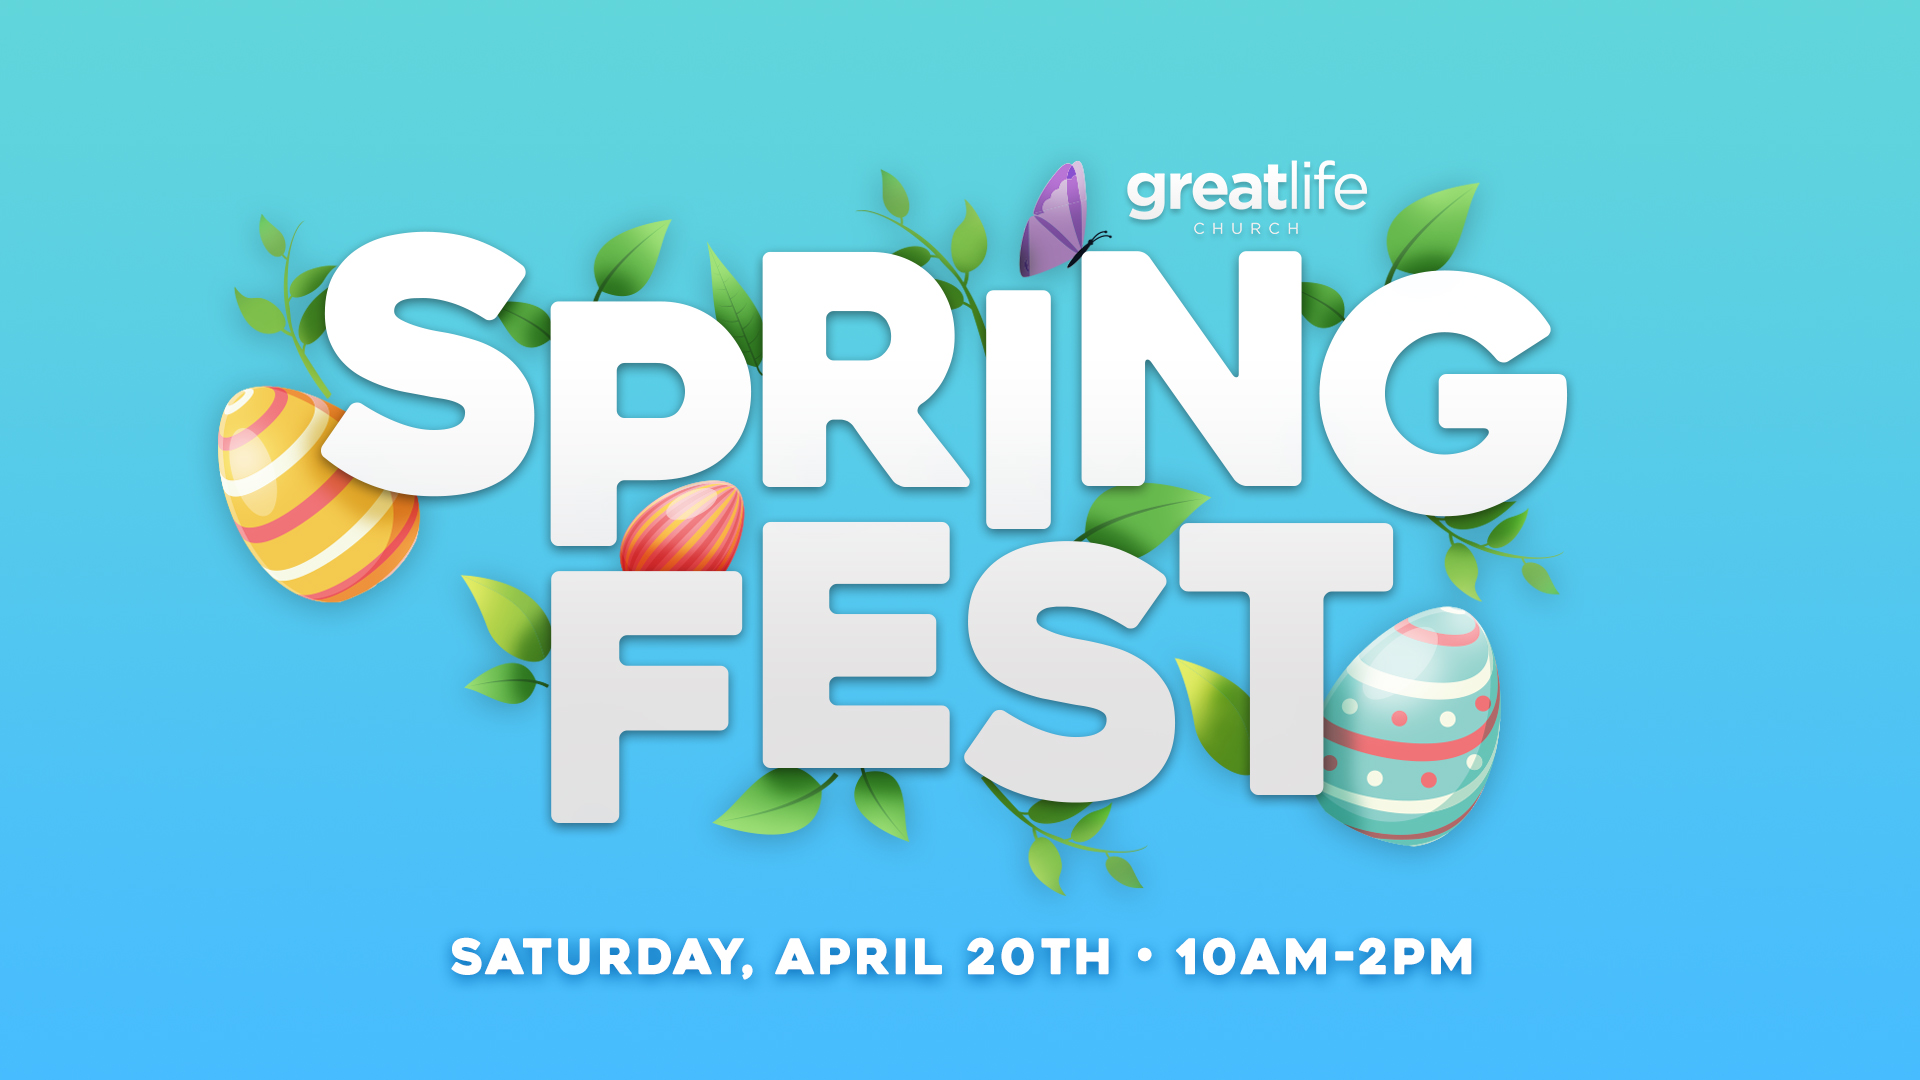 SpringFest-GreatLifeChurch